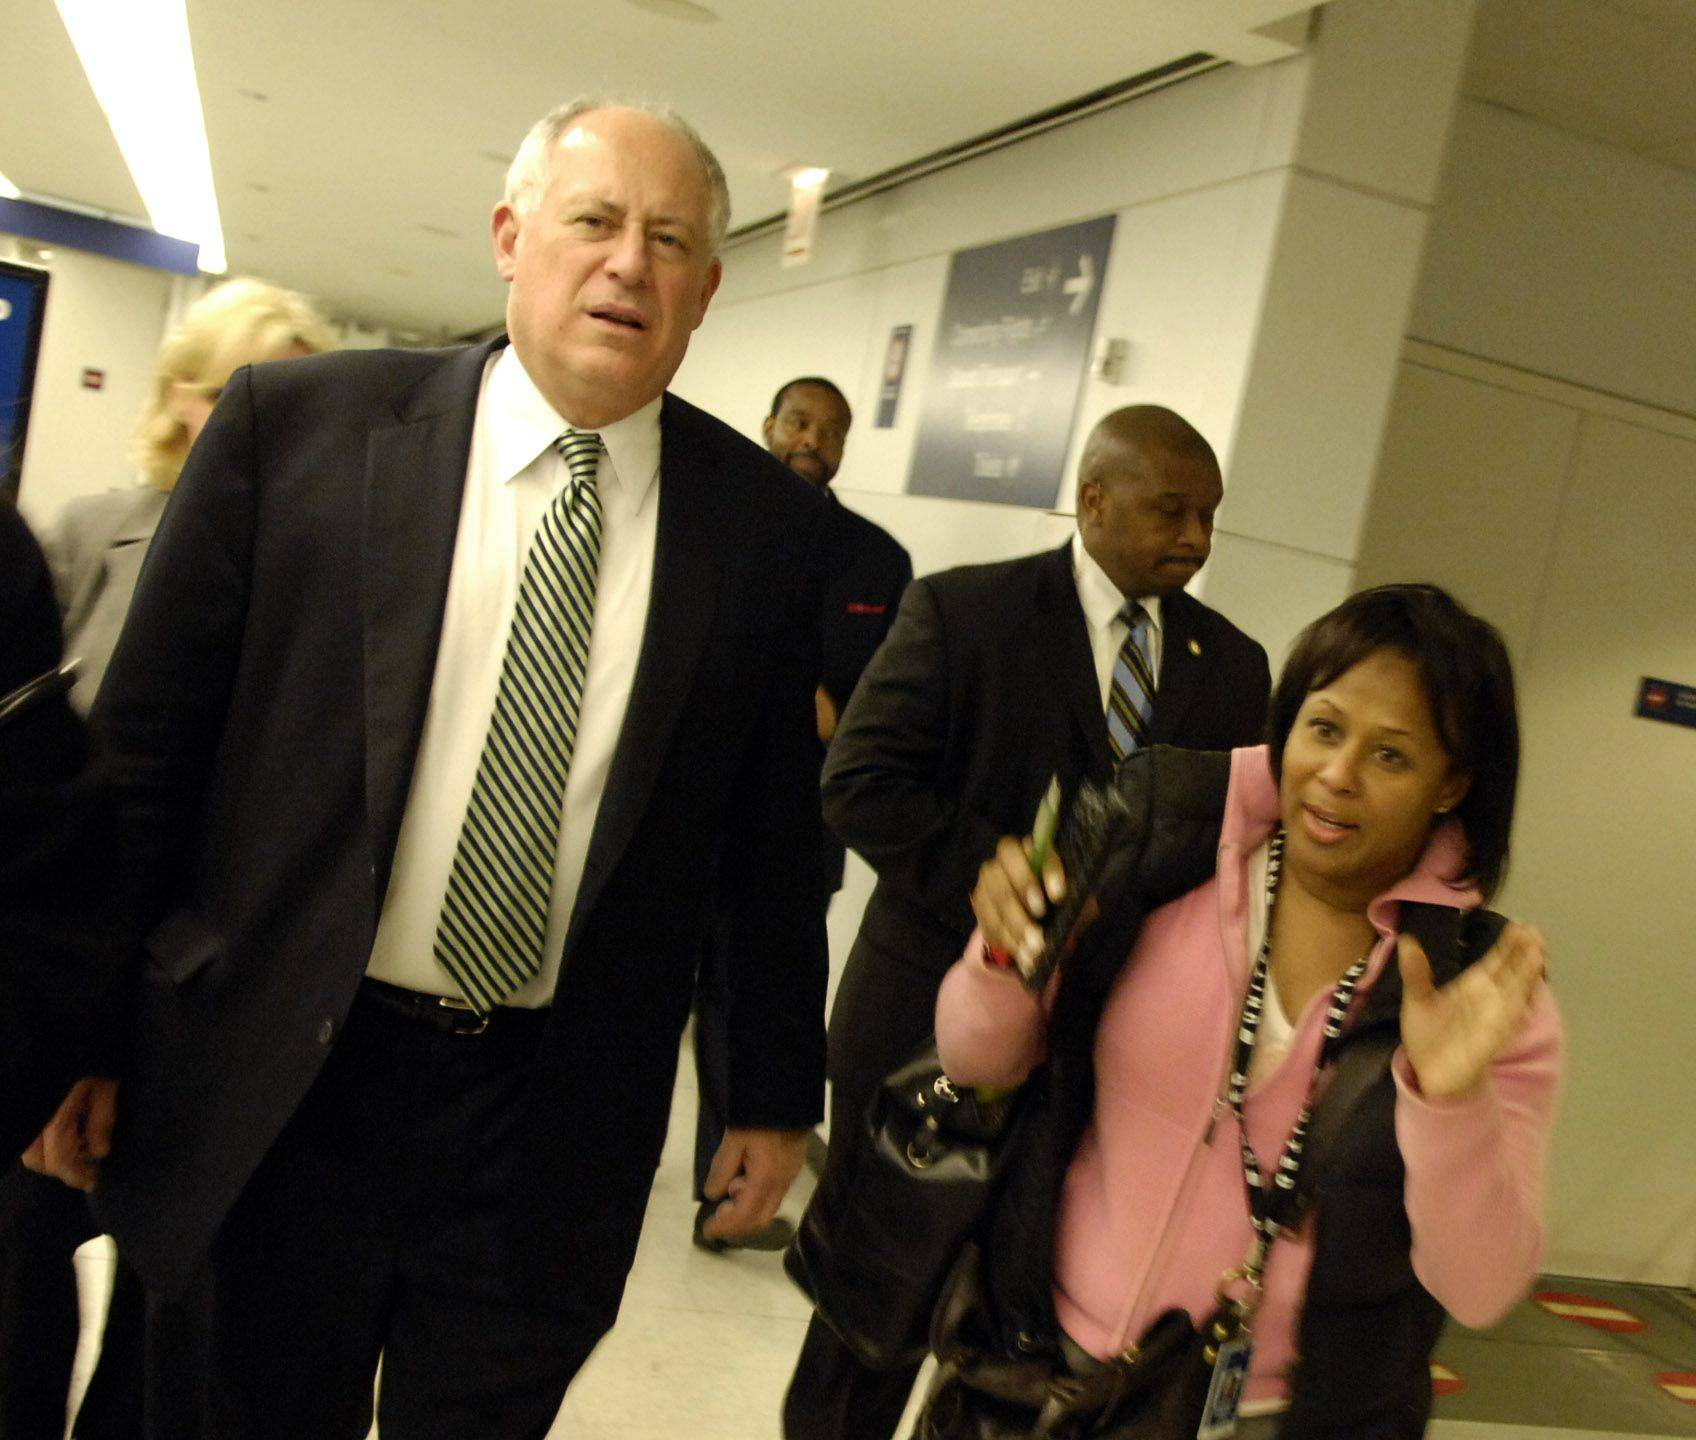 Governor Pat Quinn talks with United Airlines' Sonya Jackson after United's relief trip to Haiti.